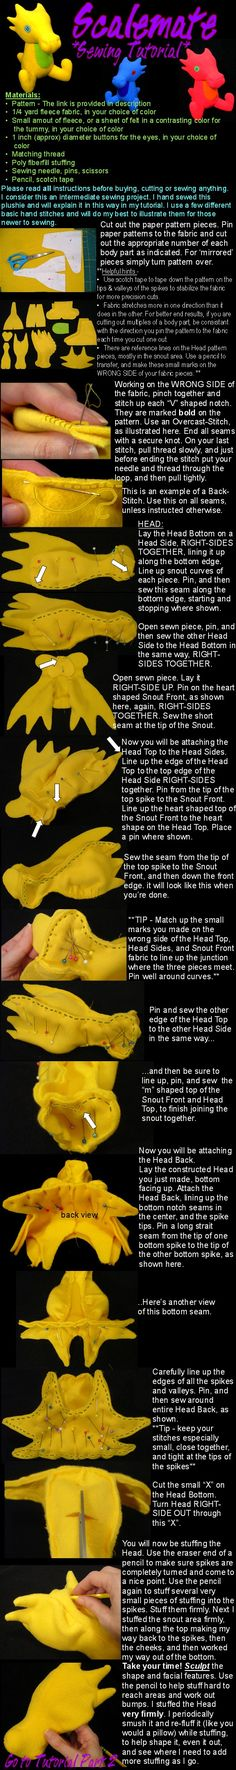 Scalemate sewing tutorial Part 1 by ~lishlitz on deviantART